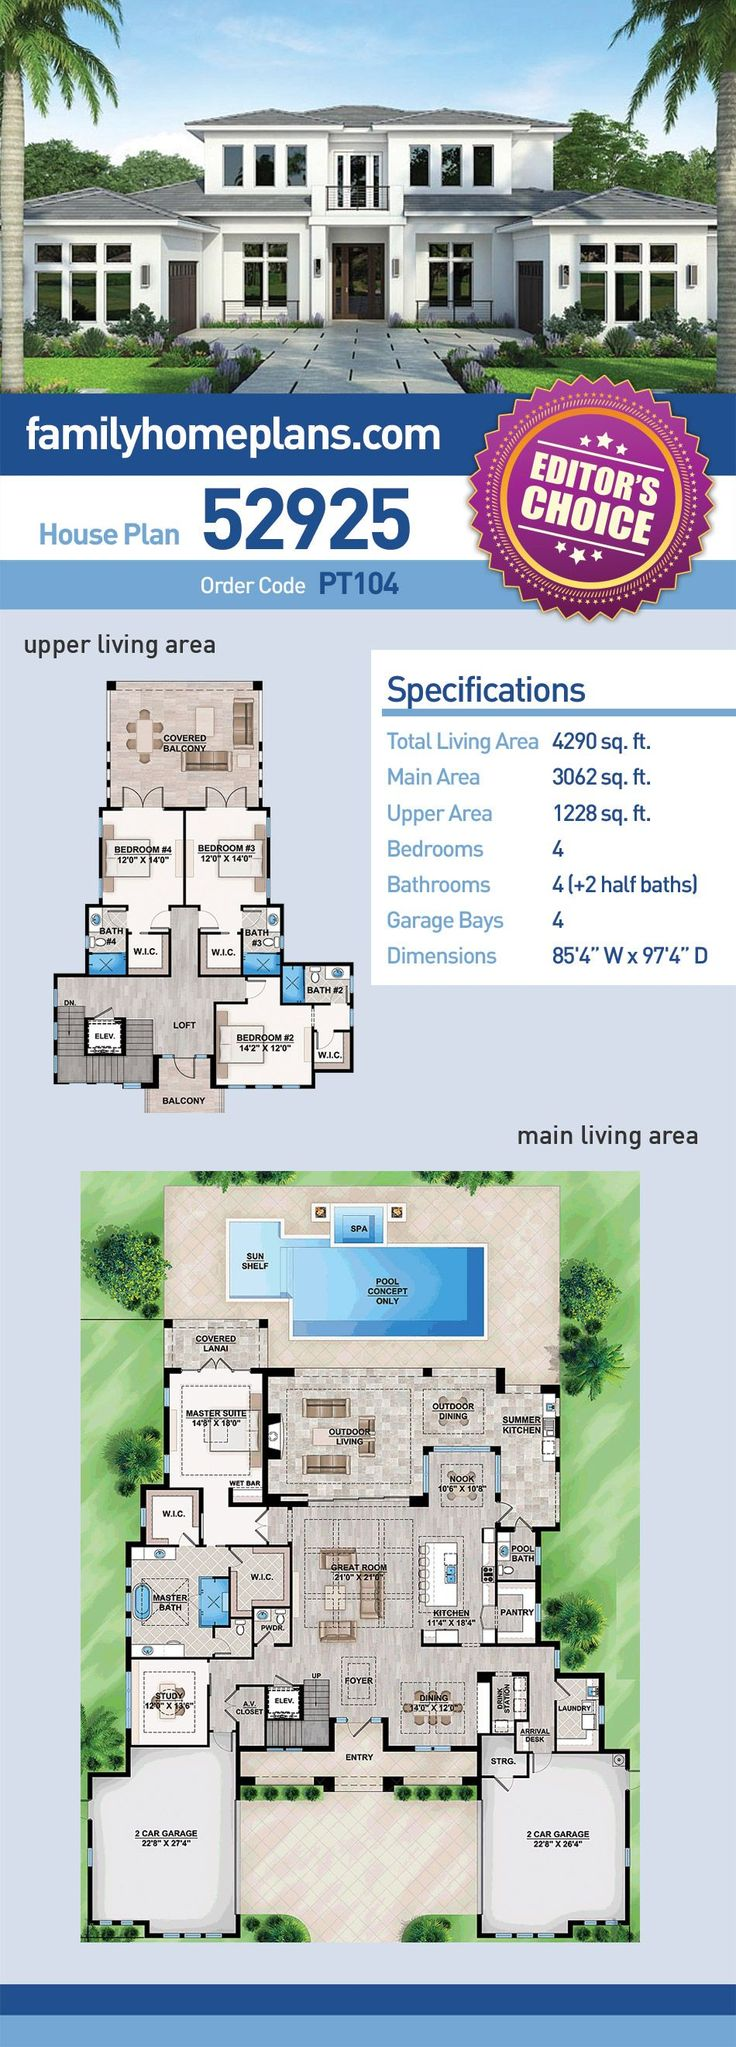 Contemporary House Plan 52925   Total Living Area: 4,290 SQ FT, 4 bedrooms, 4 full bathrooms and 2 half baths. #contemporaryhome